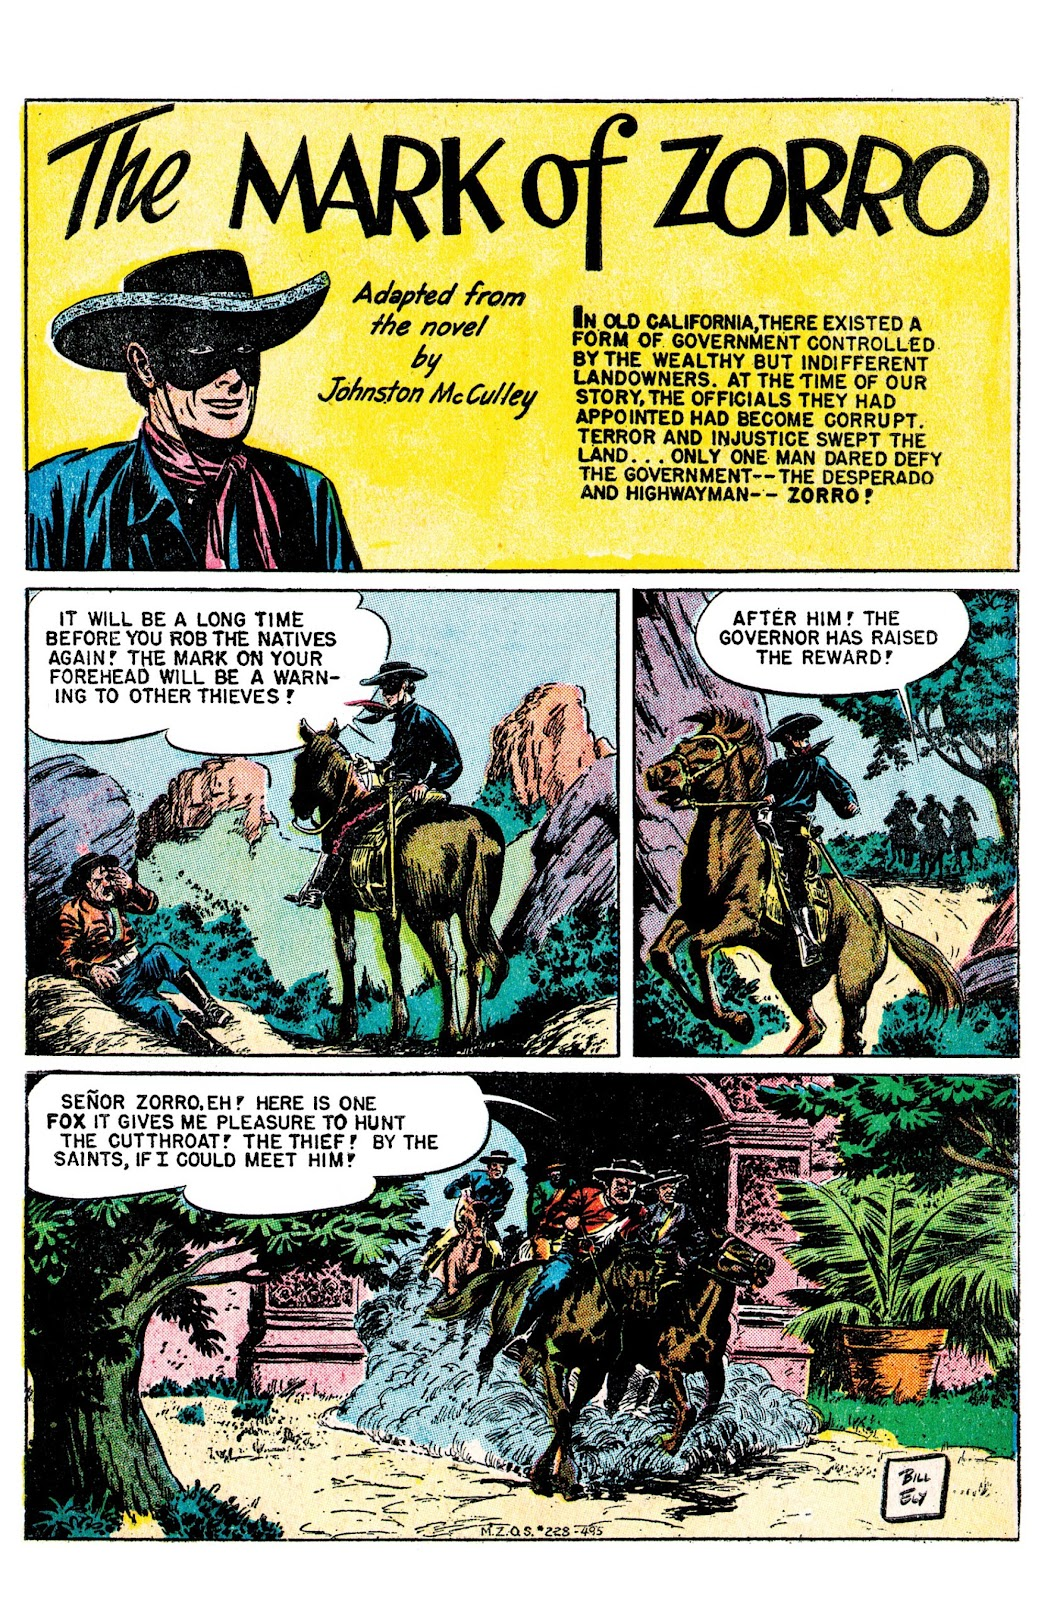 Read online AM Archives: The Mark of Zorro #1 1949 Dell Edition comic -  Issue #1 1949 Dell Edition Full - 3